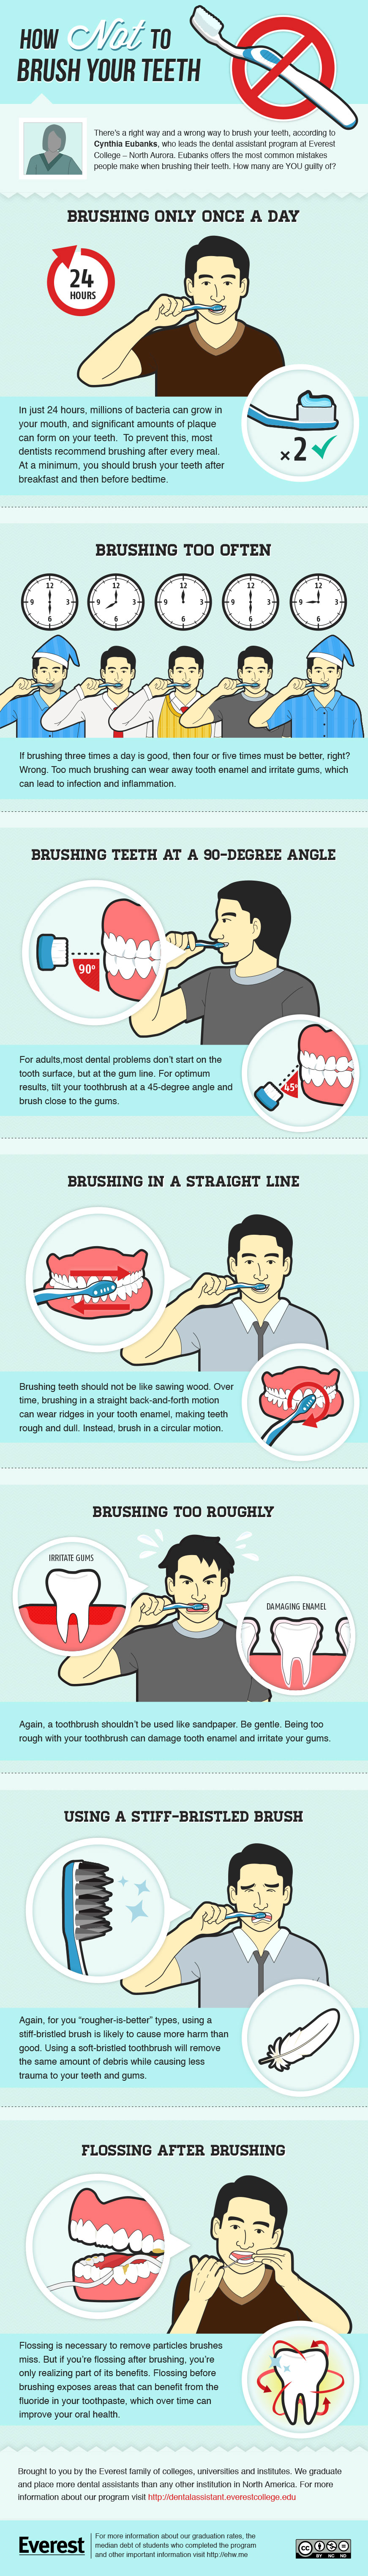 A Student Guide To Brushing Your Teeth